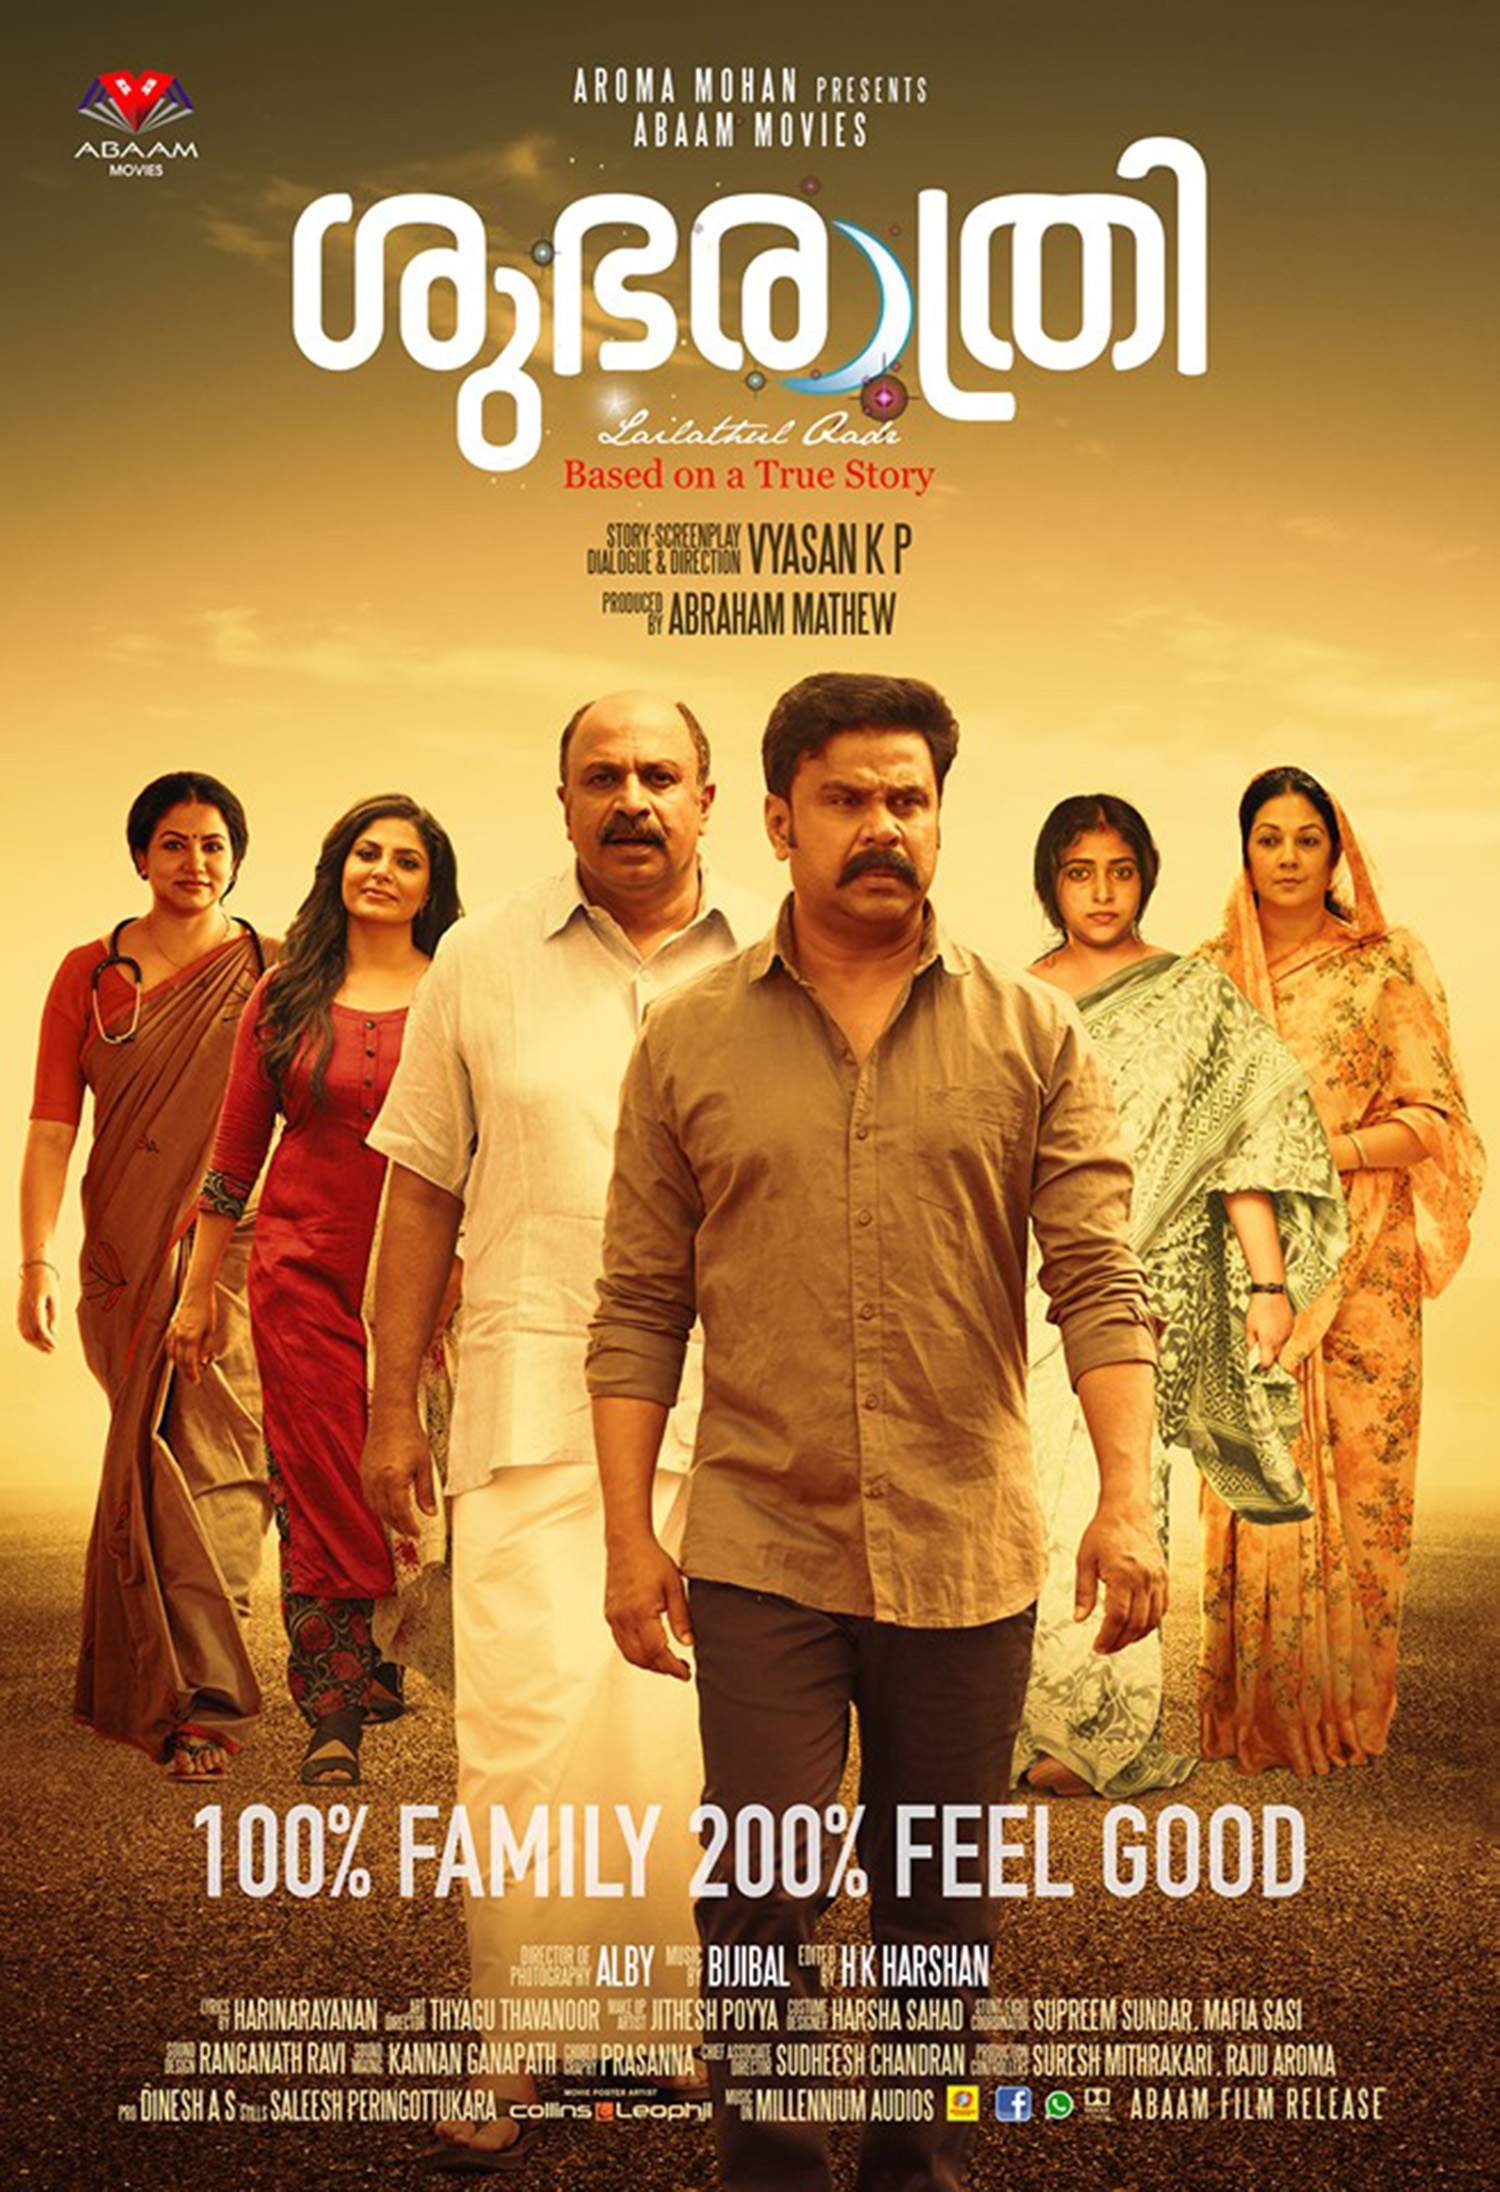 Shubharathri,Shubharathri second look poster,Shubharathri new poster,dileep,anu sithara,dileep's new movie,dileep's new movie Shubharathri,Shubharathri latest poster,Shubharathri malayalam movie,Shubharathri movie updates